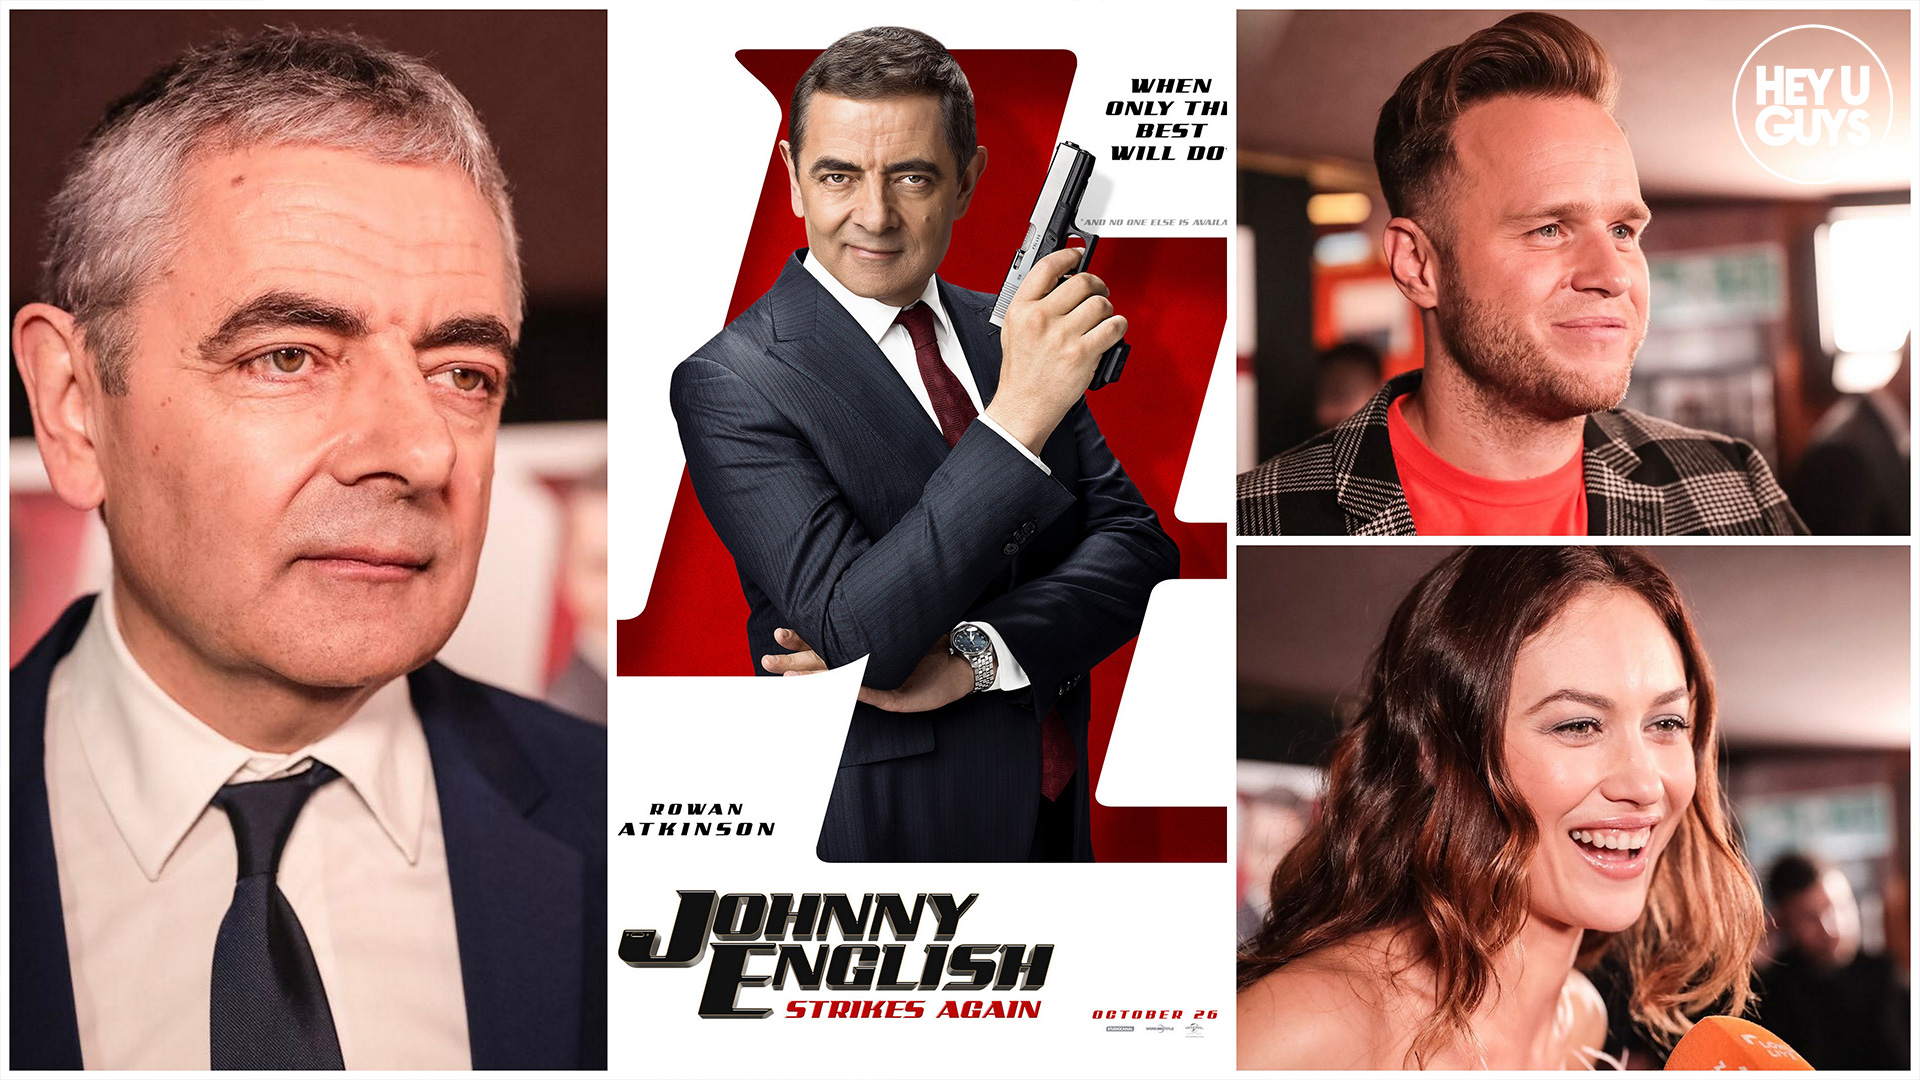 johnny-english-strikes-again-premiere